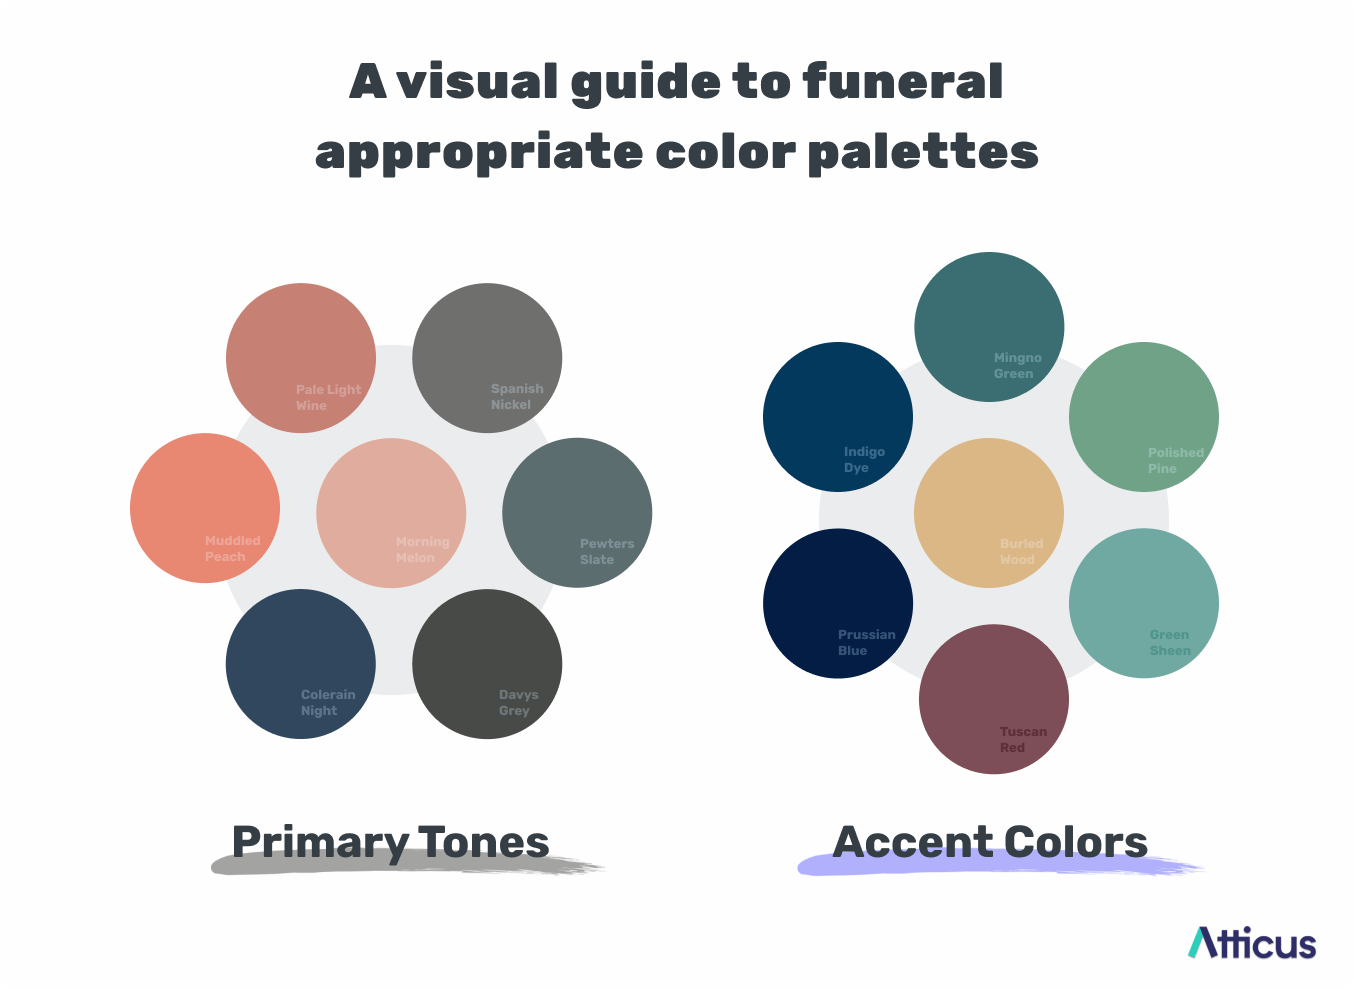 Color swatches of appropriate primary and accent colors for funeral wear